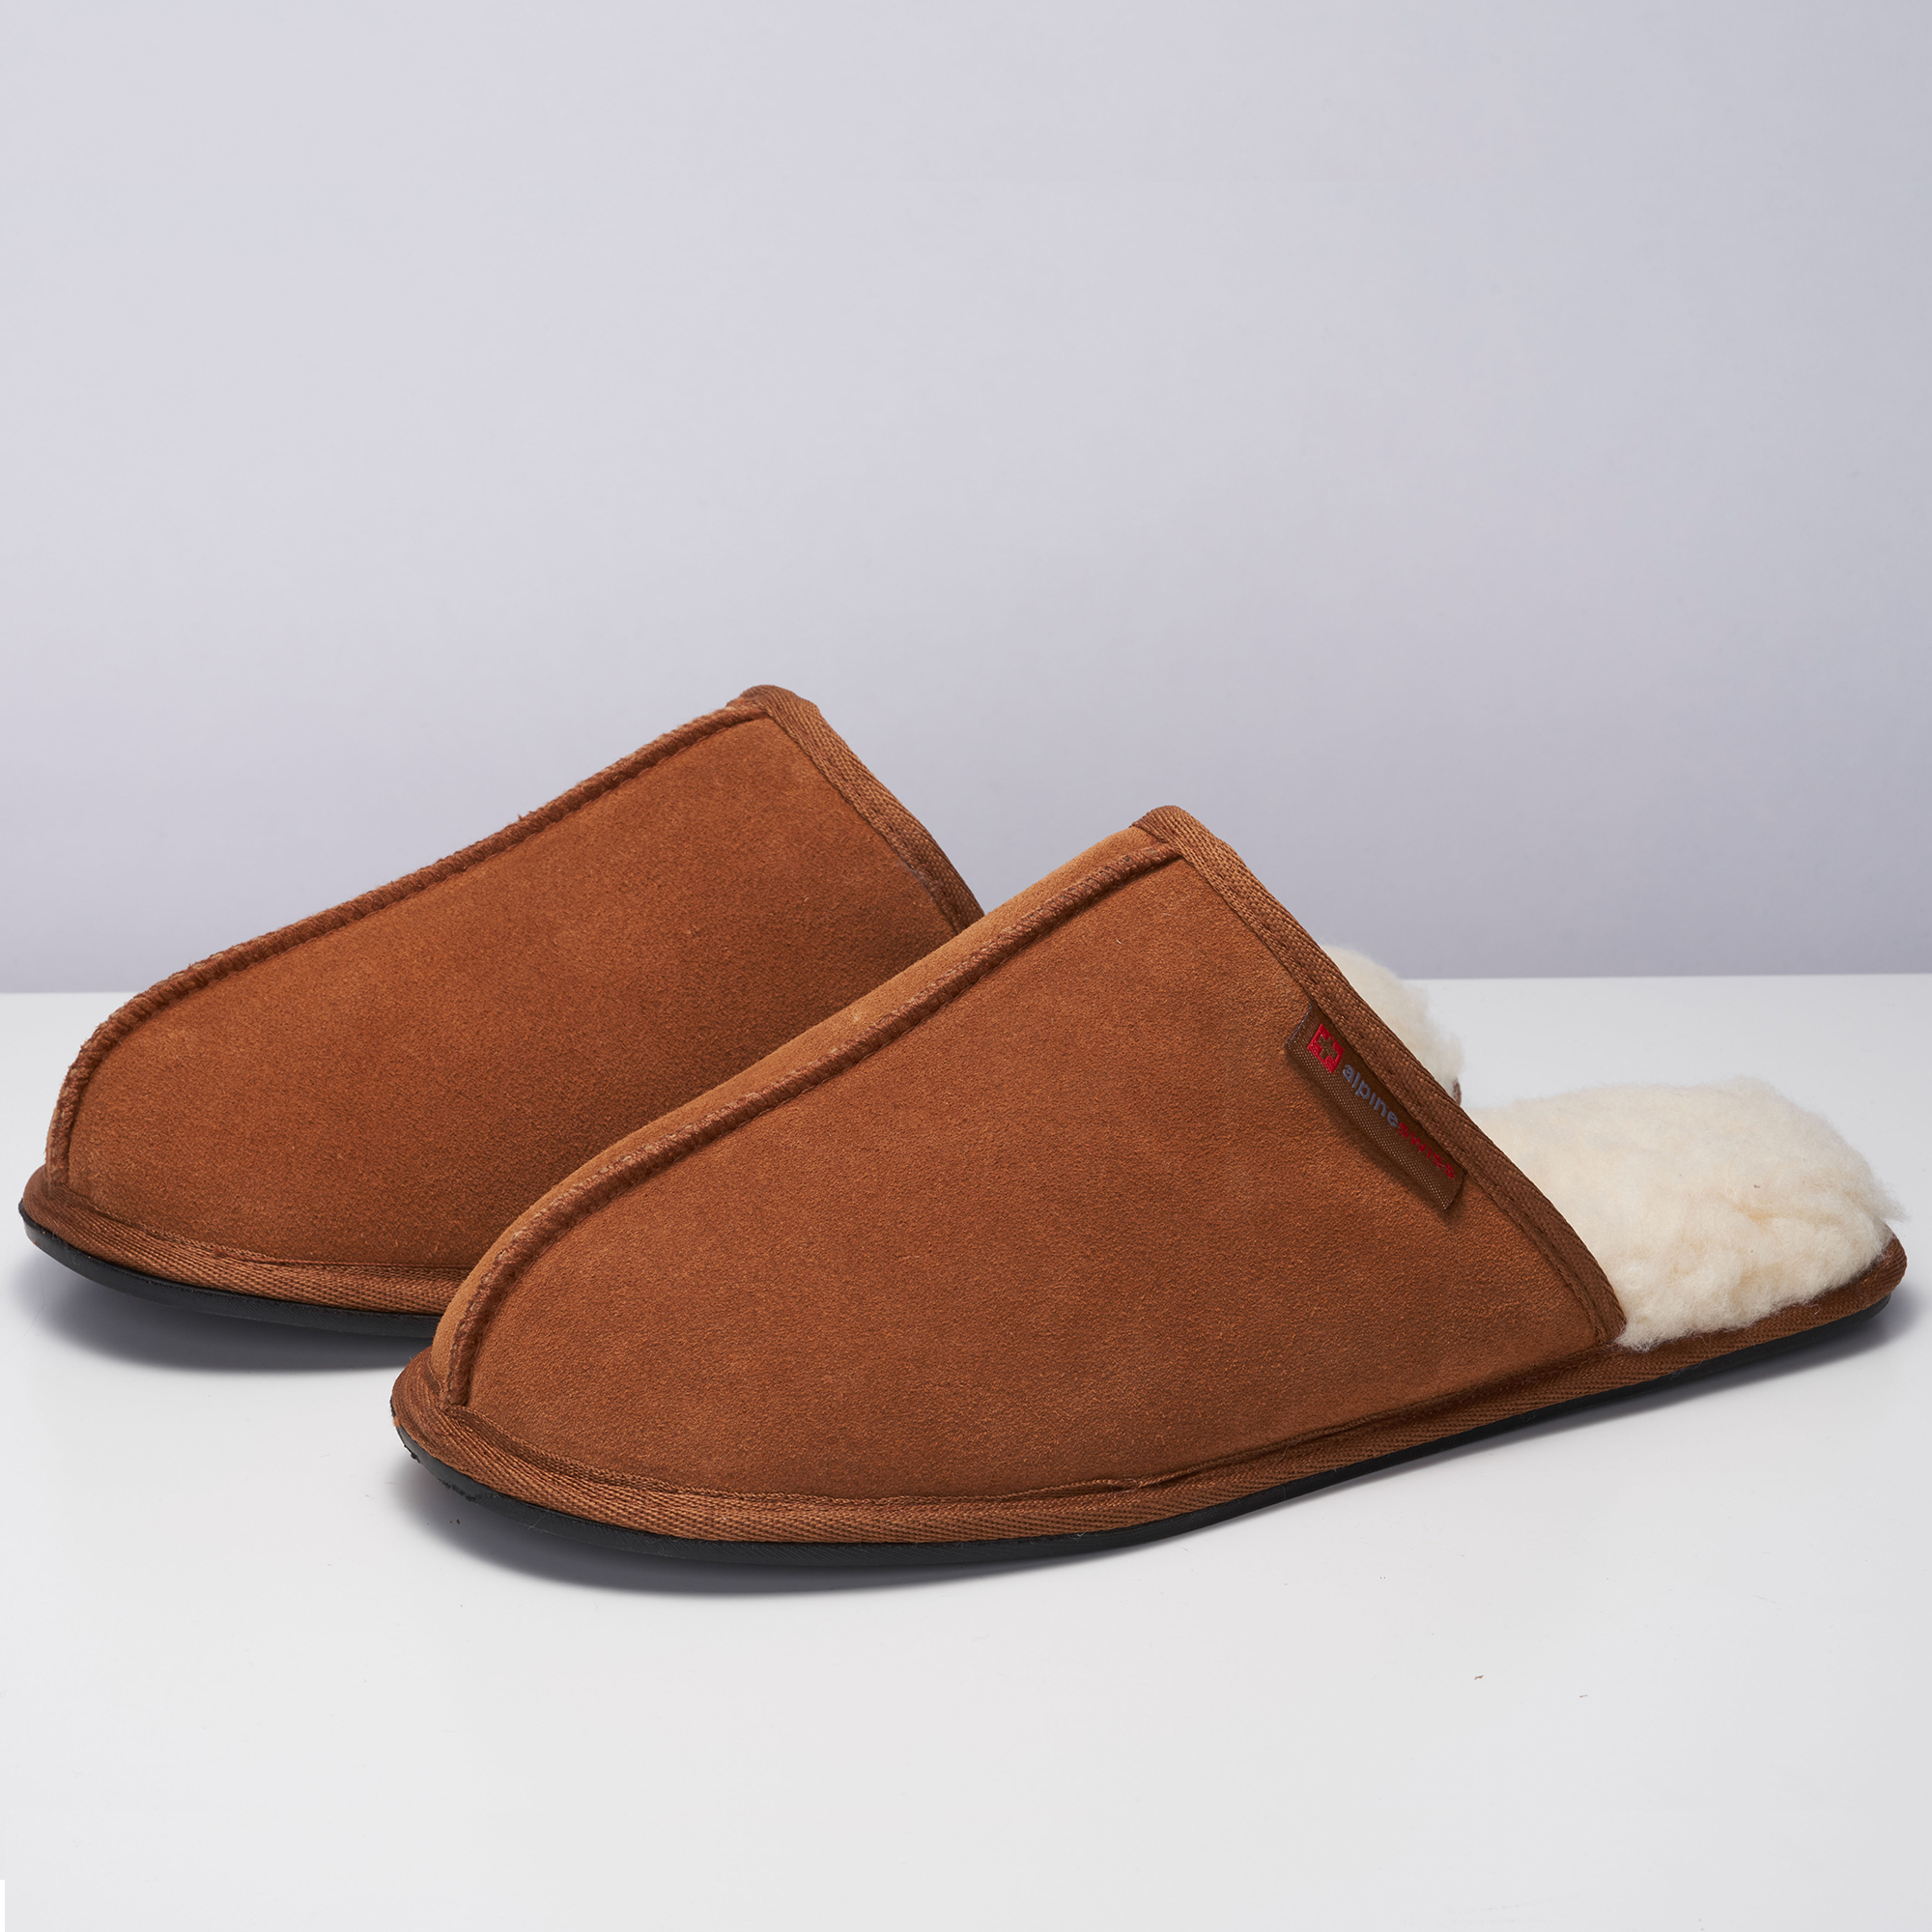 Alpine-Swiss-Mens-Suede-Memory-Foam-Scuff-Slippers-Comfort-Slip-On-House-Shoes thumbnail 23